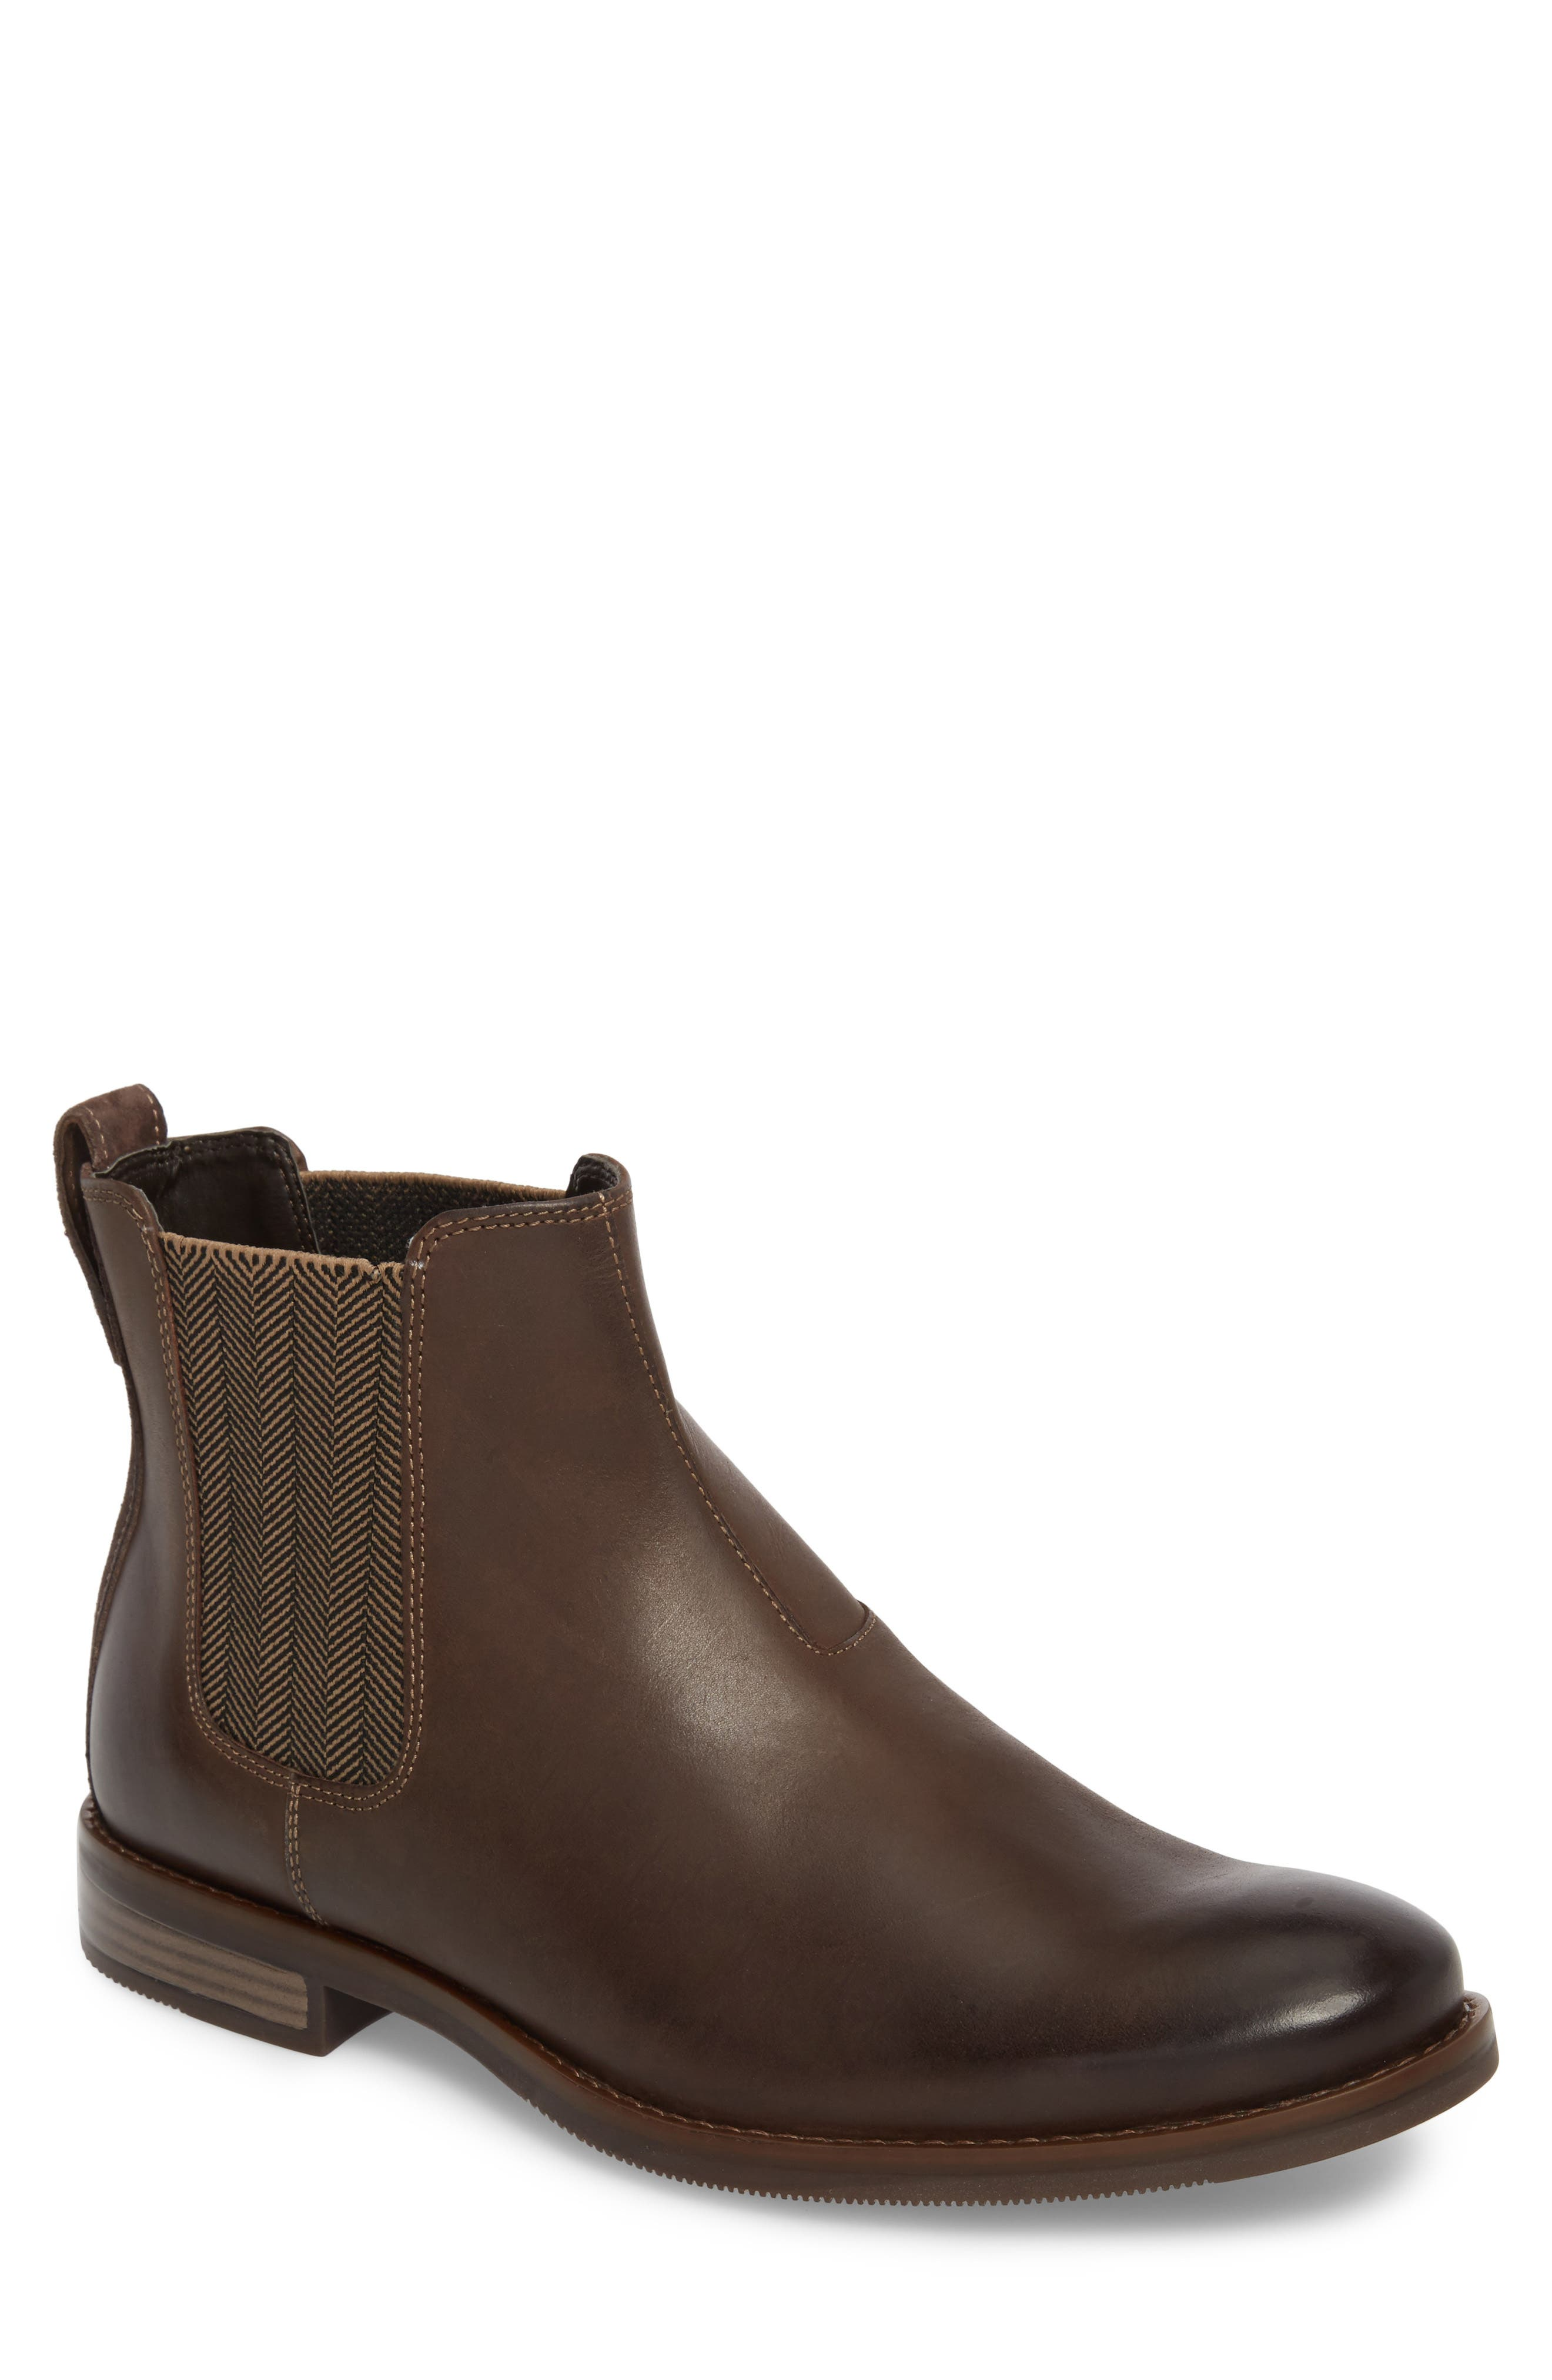 Wynstin Chelsea Boot,                         Main,                         color, DARK BITTER CHOCOLATE LEATHER